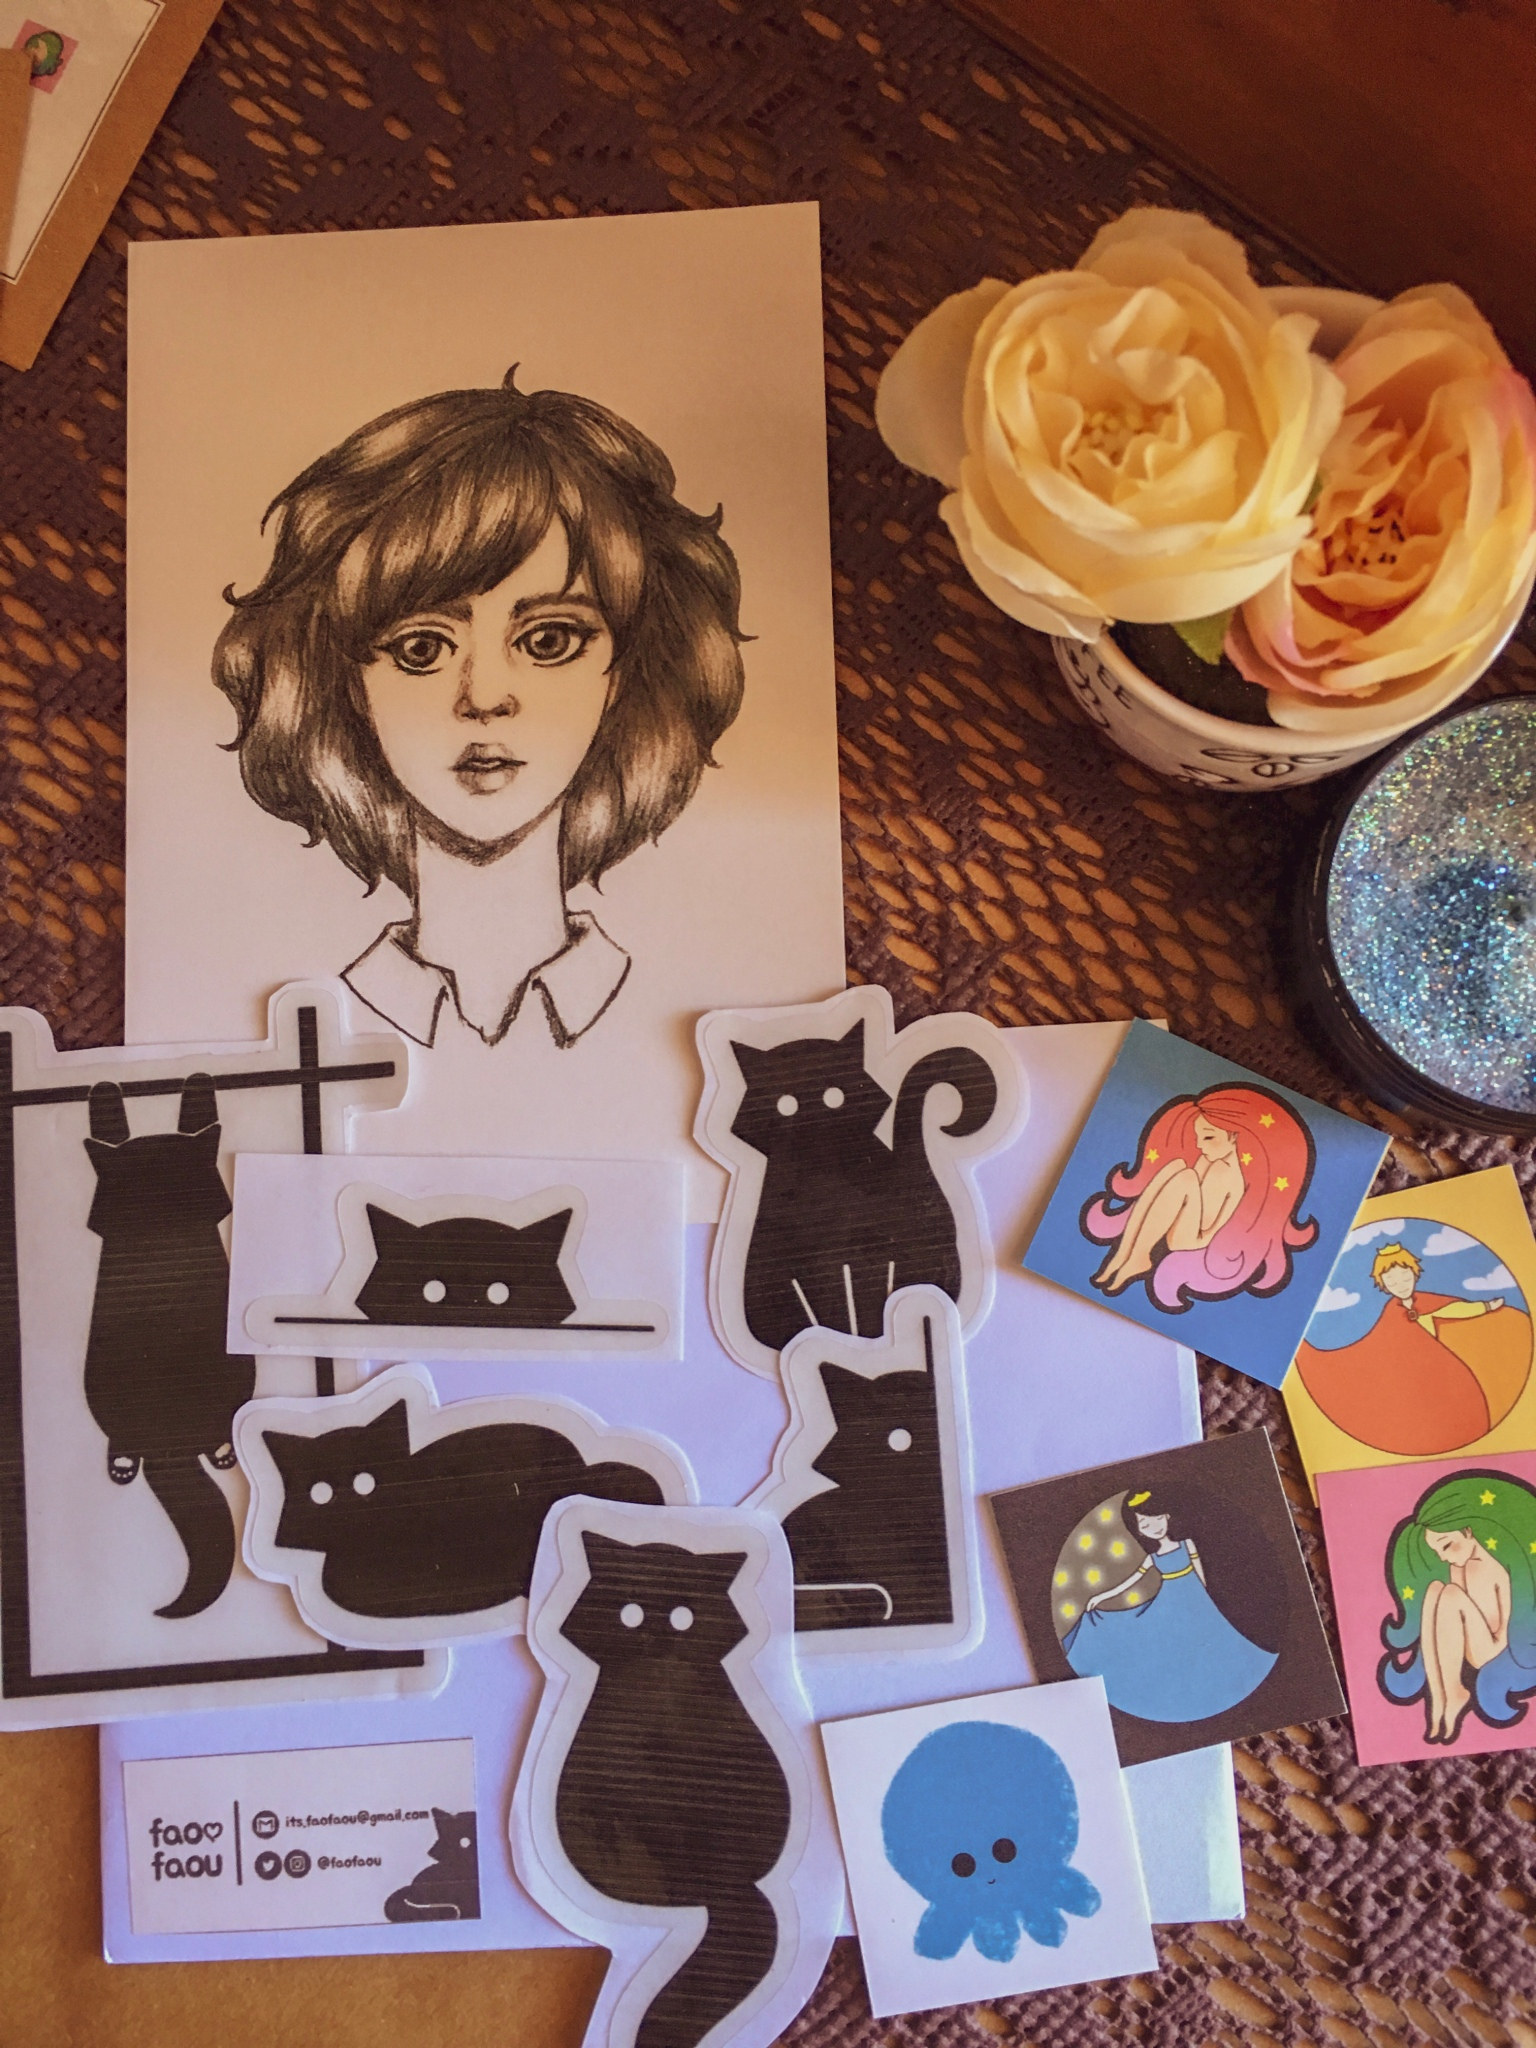 faofaou stickers and art prints